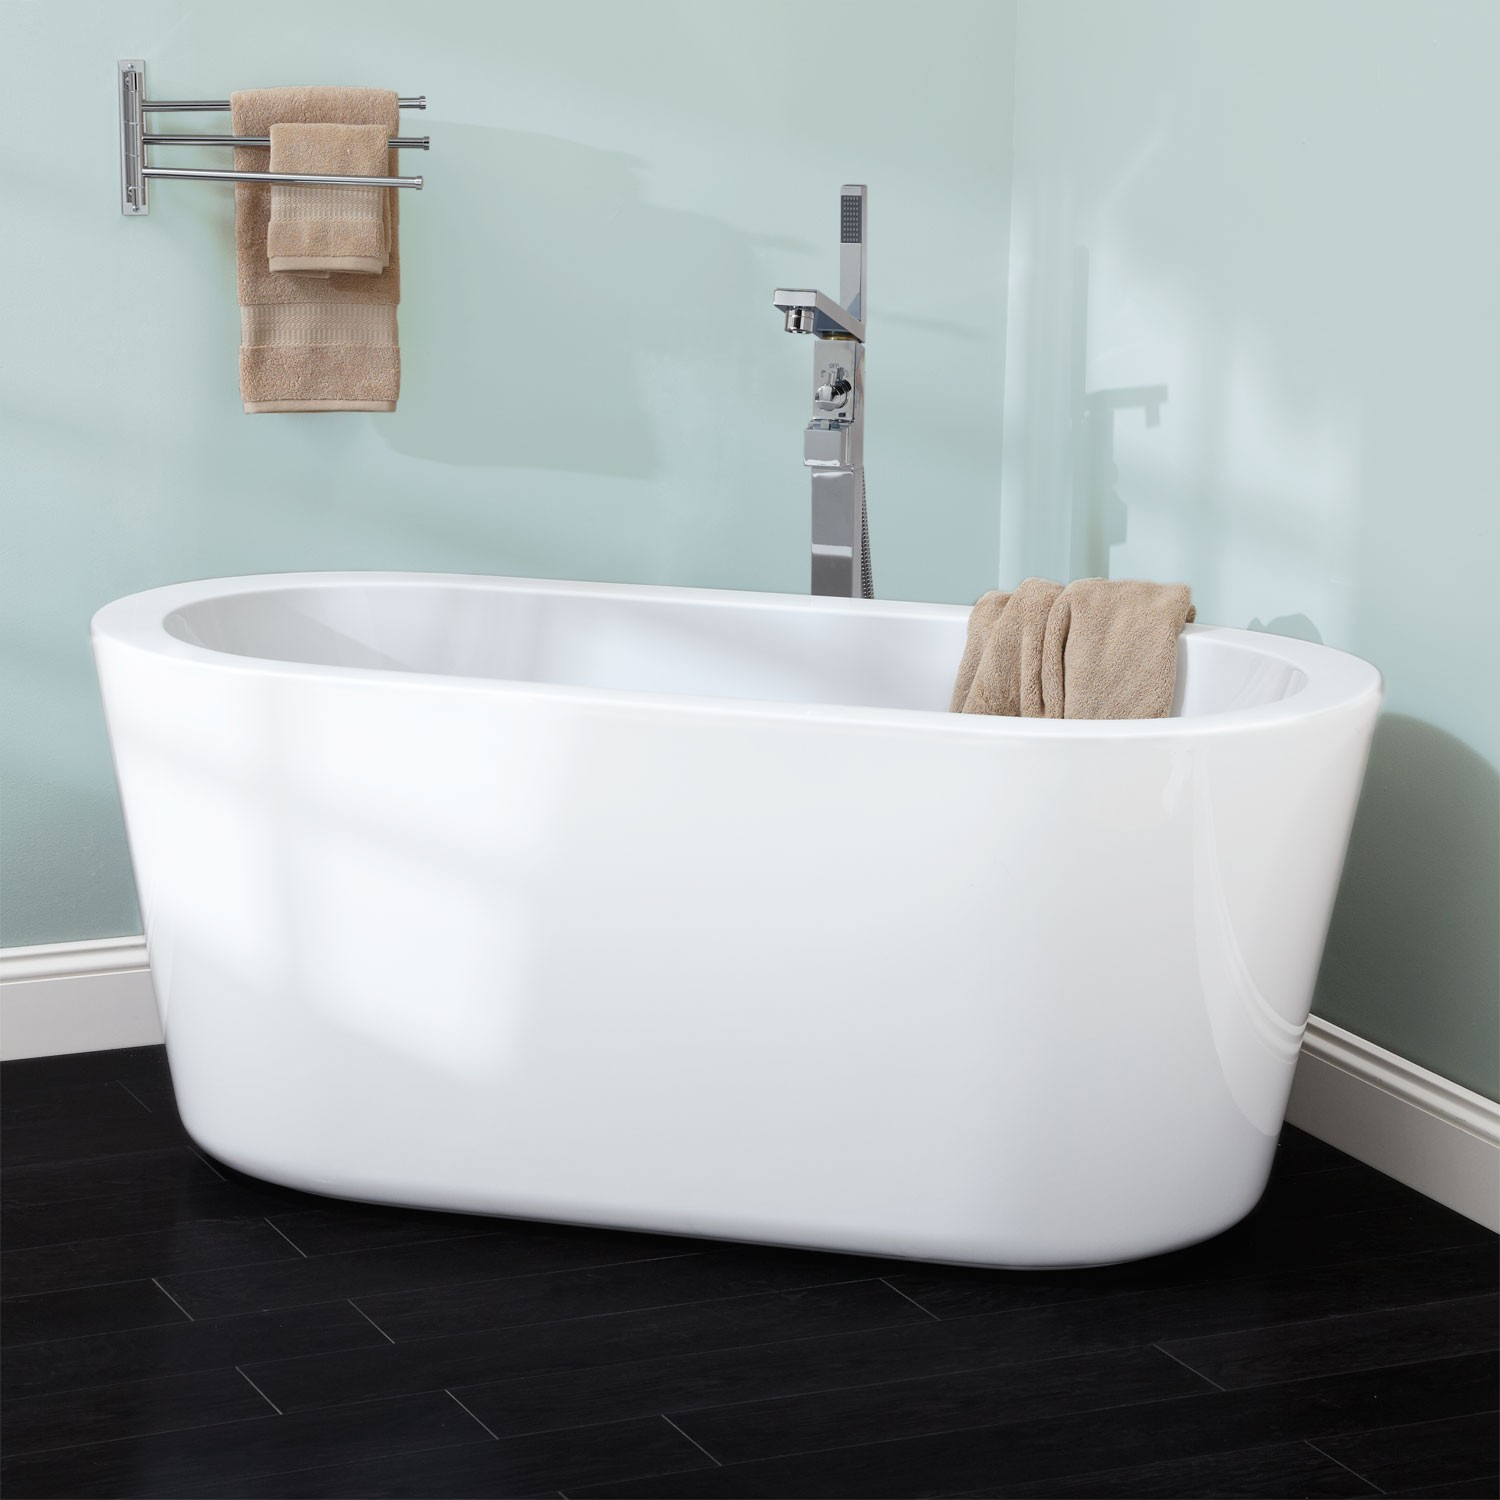 55 Abescon Acrylic Freestanding Tub Bathroom intended for dimensions 1500 X 1500